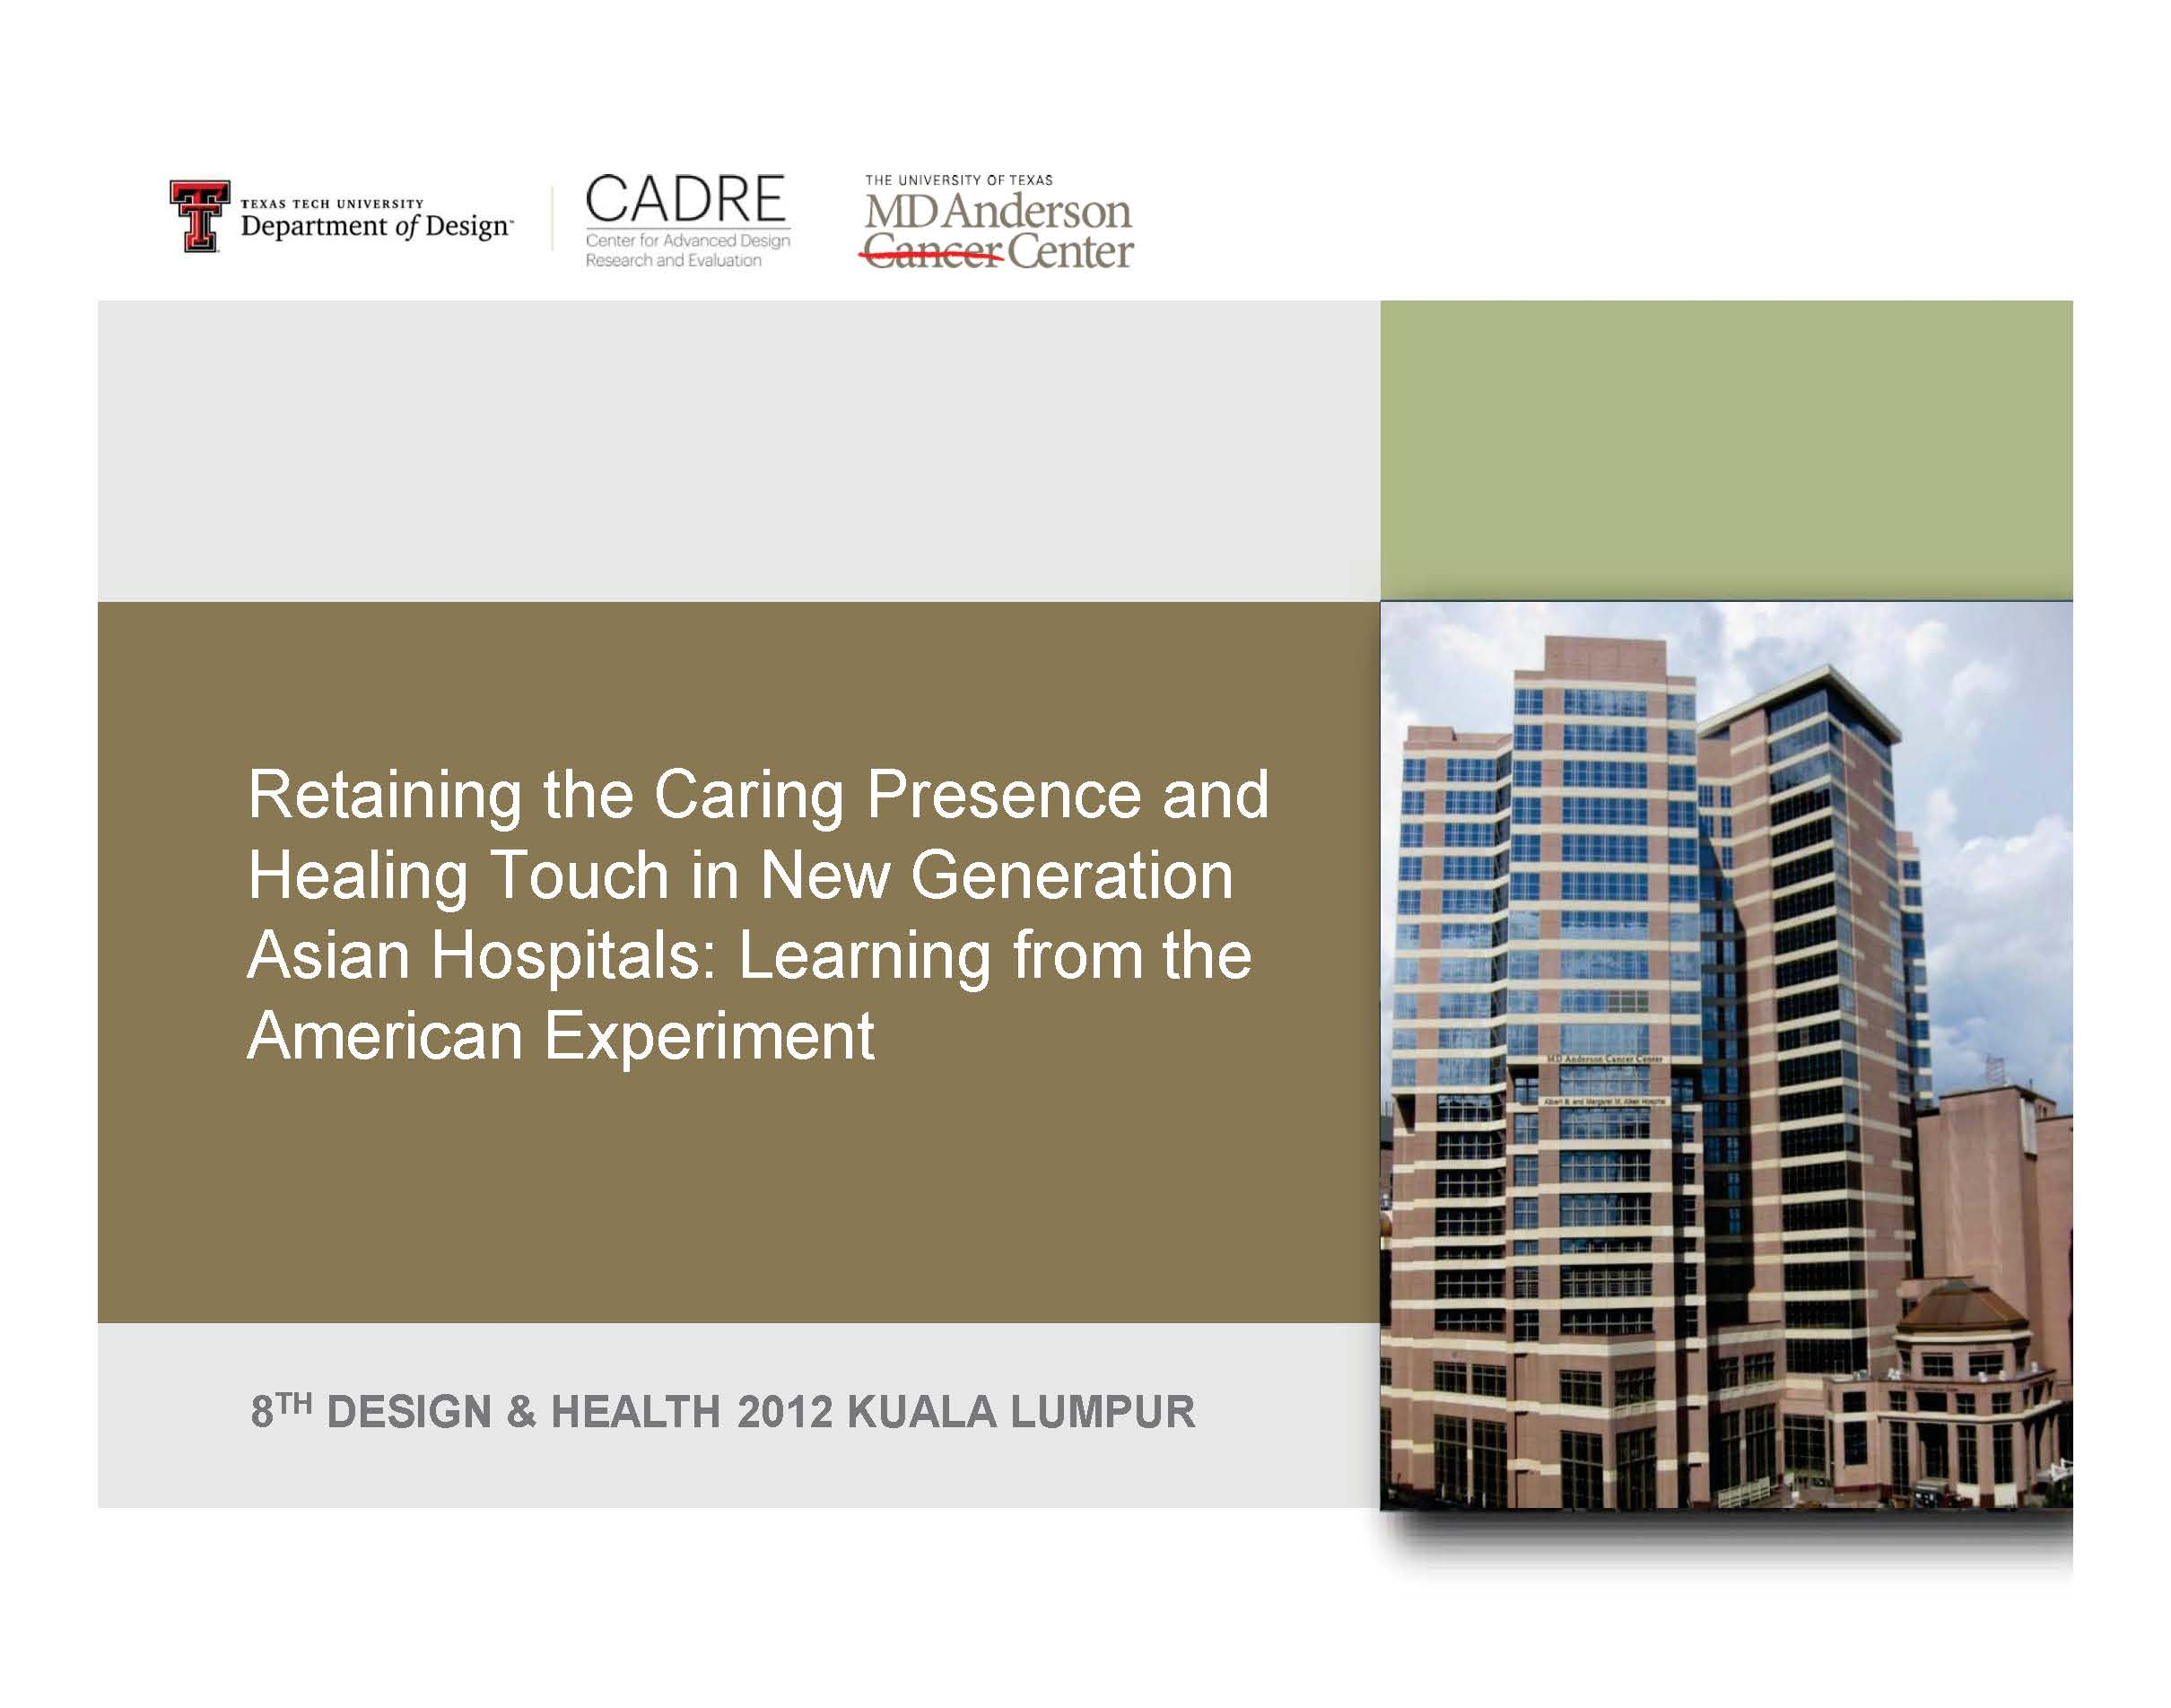 Retaining the Caring Presence and Healing Touch in New GenerationAsian Hospitals: Learning from the American Experiment    Pamela Redden and Debajyoti Pati   Design & Health World Congress & Exhibition